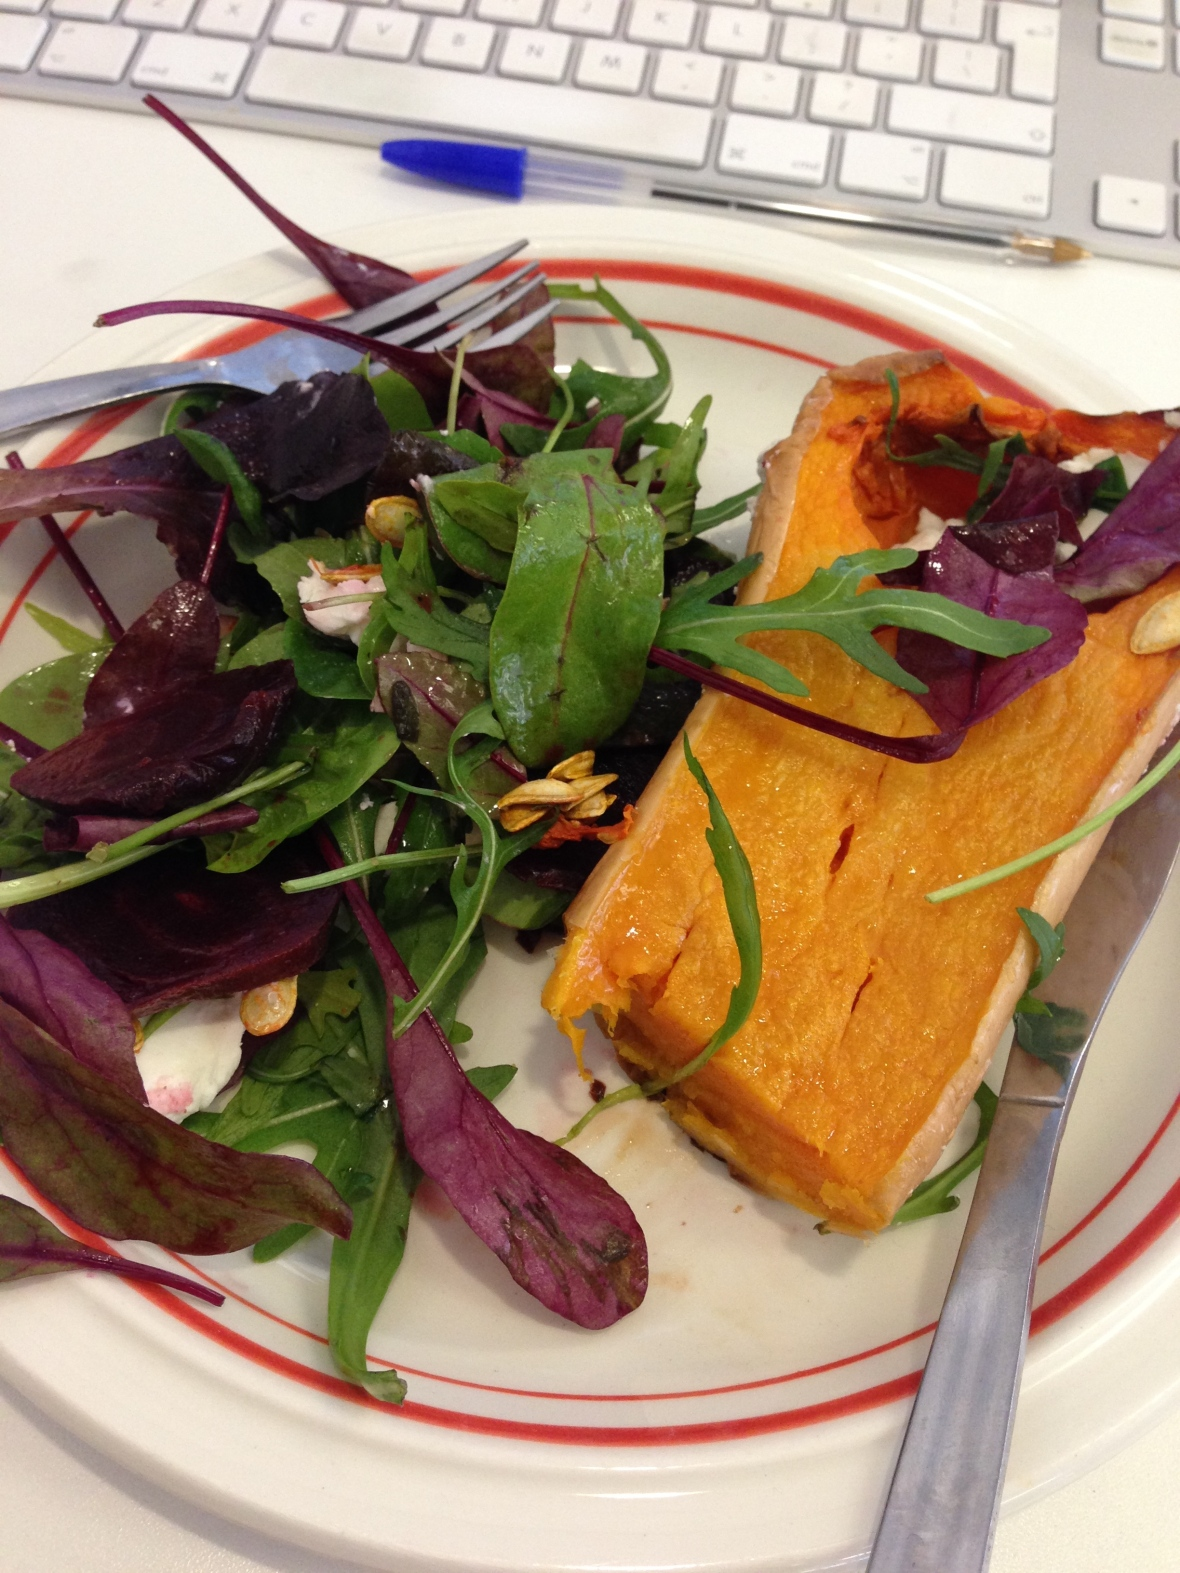 Desk Side Lunches: Roasted Butternut Squash with Beetroot and Goat's Cheese Salad